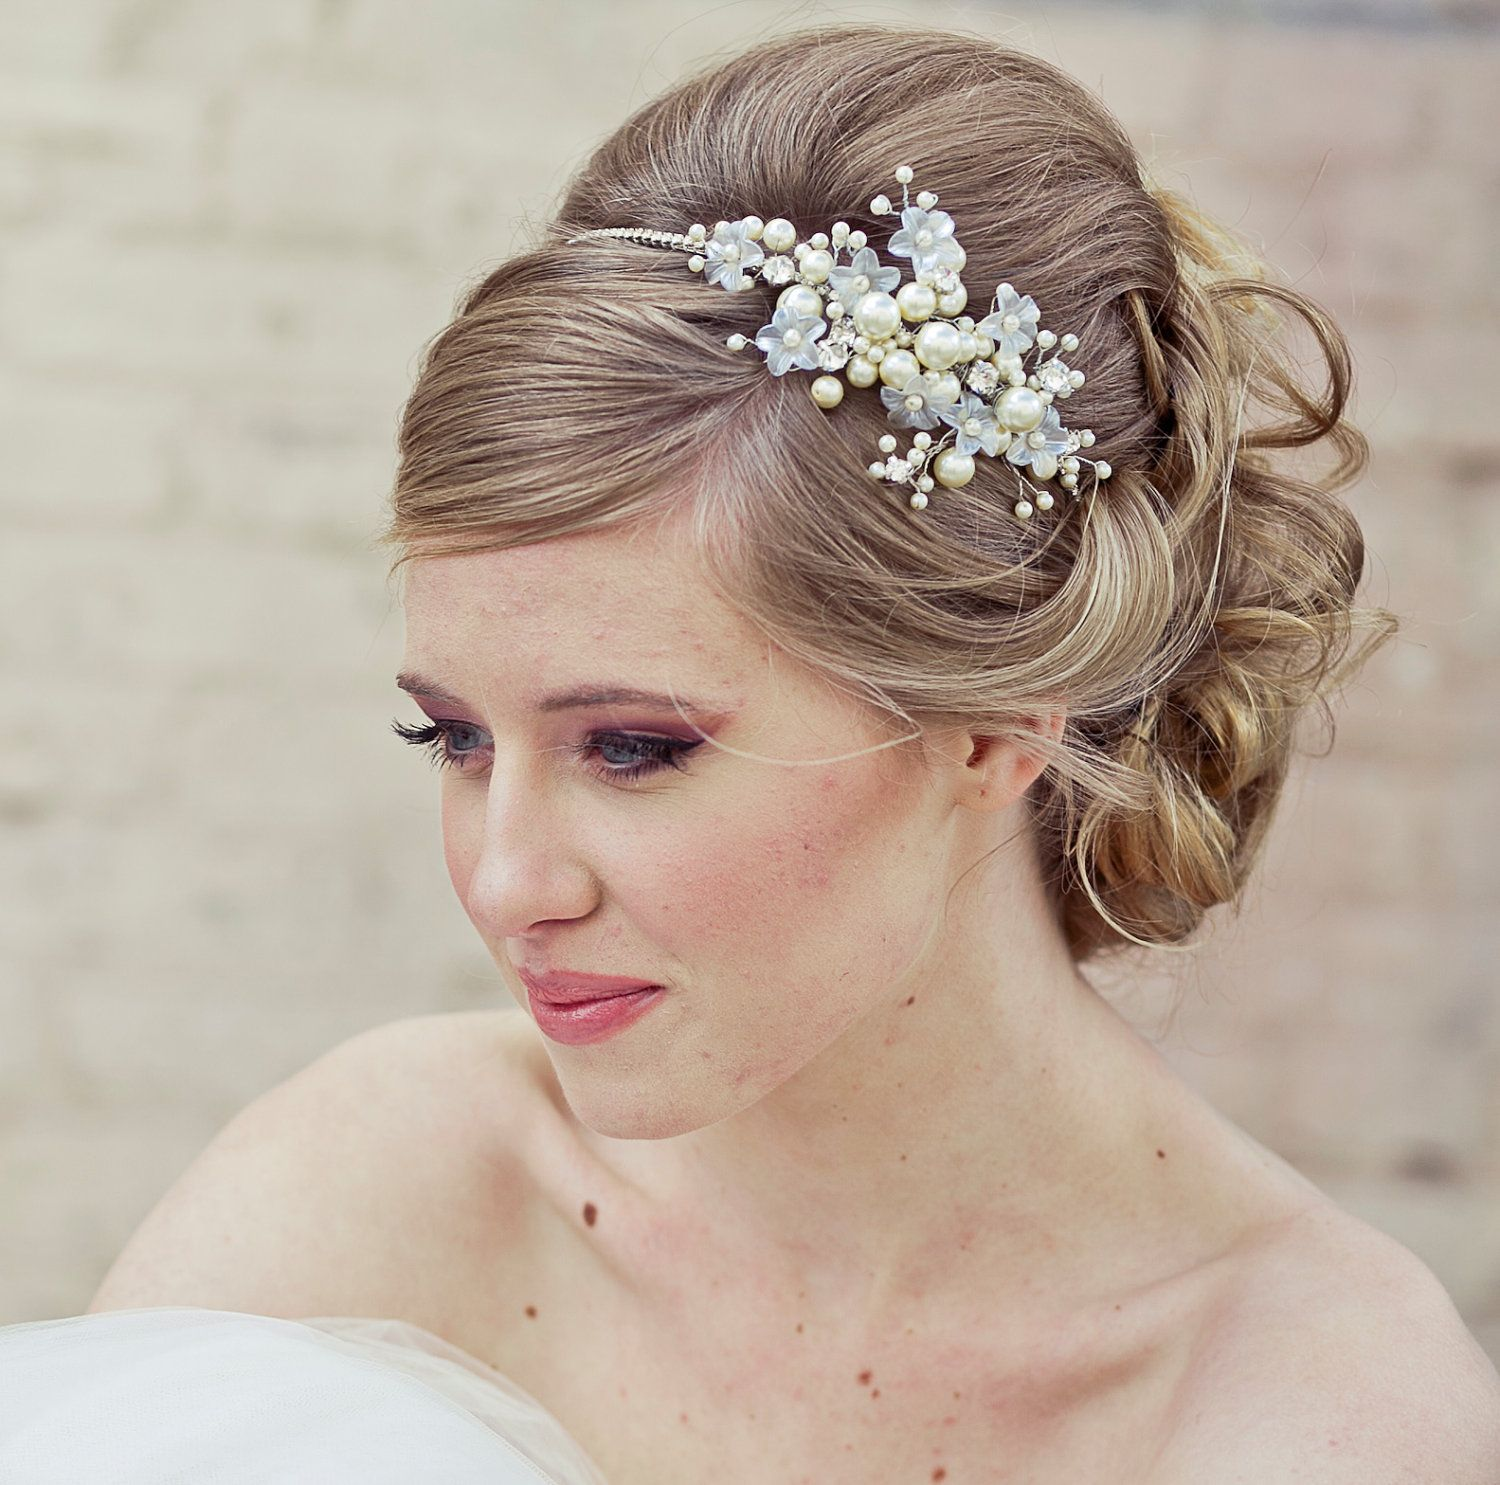 Wedding Hair Rhinestone Tiara With Flowers And Ivory Pearls Bridal